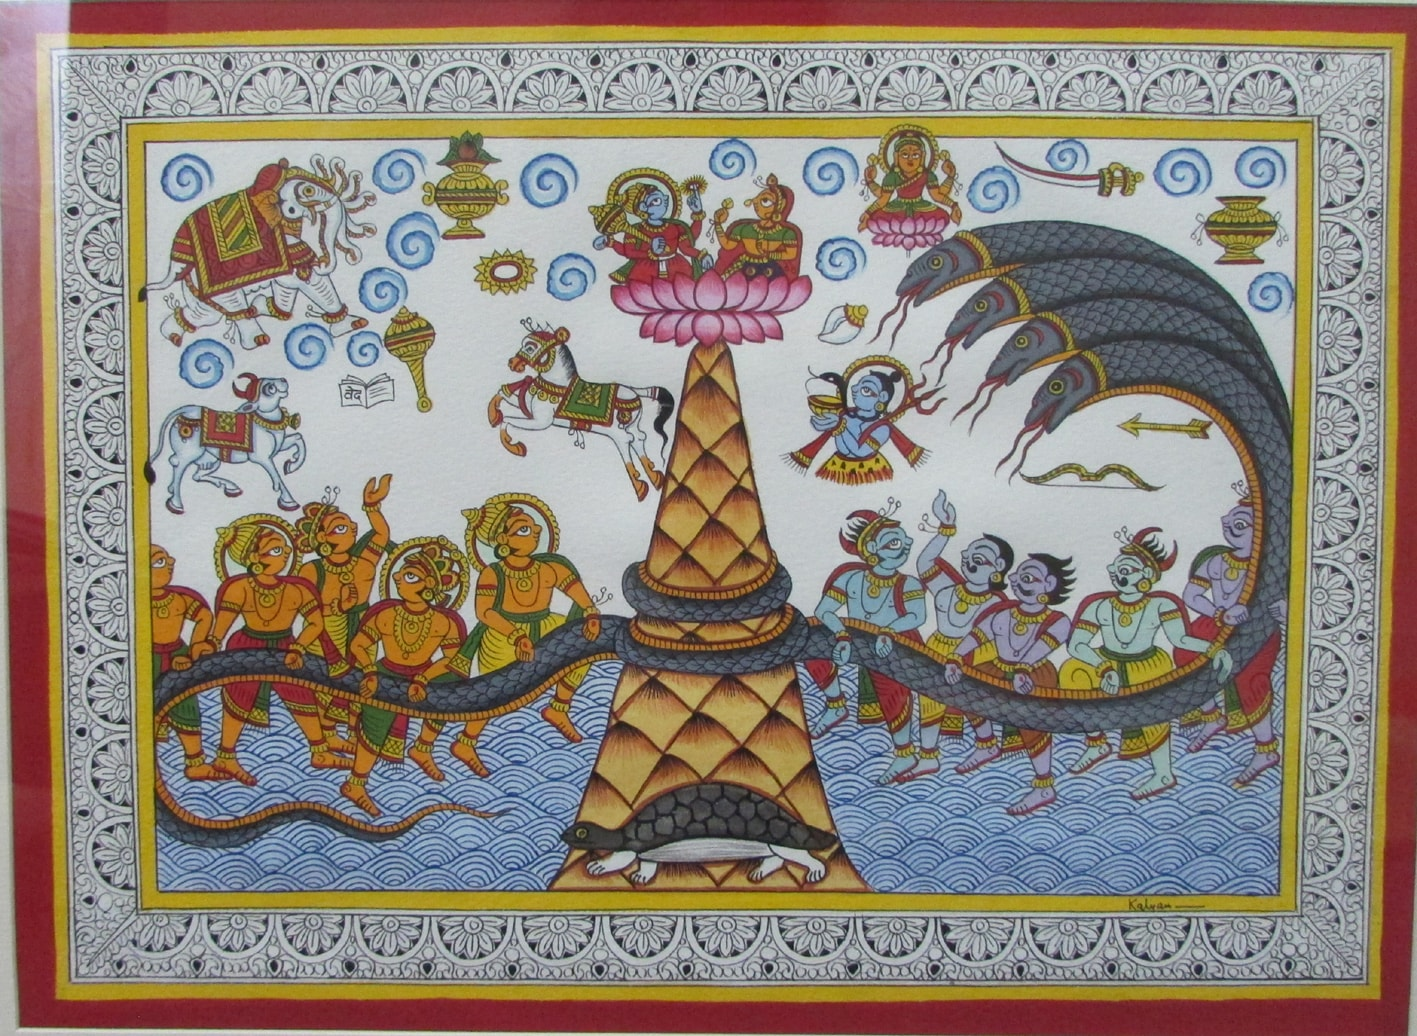 A phad painting depicting Samudra Manthan.